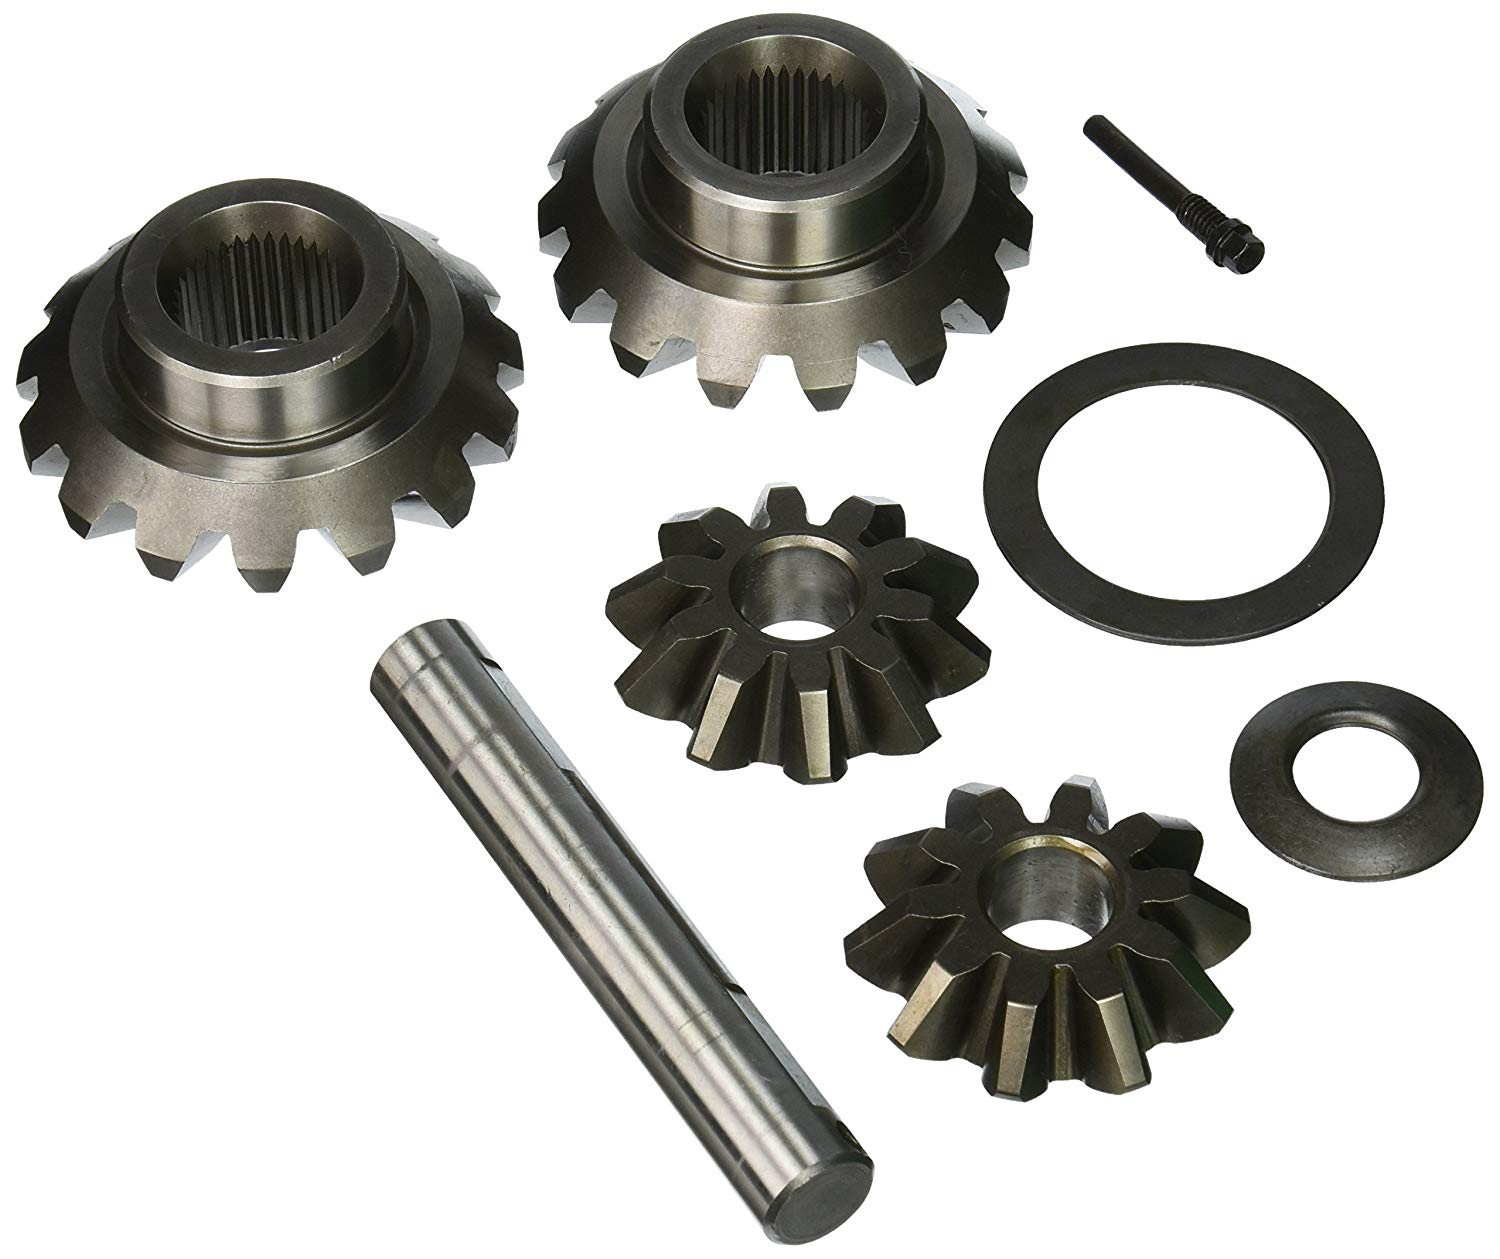 Spider gears for differential